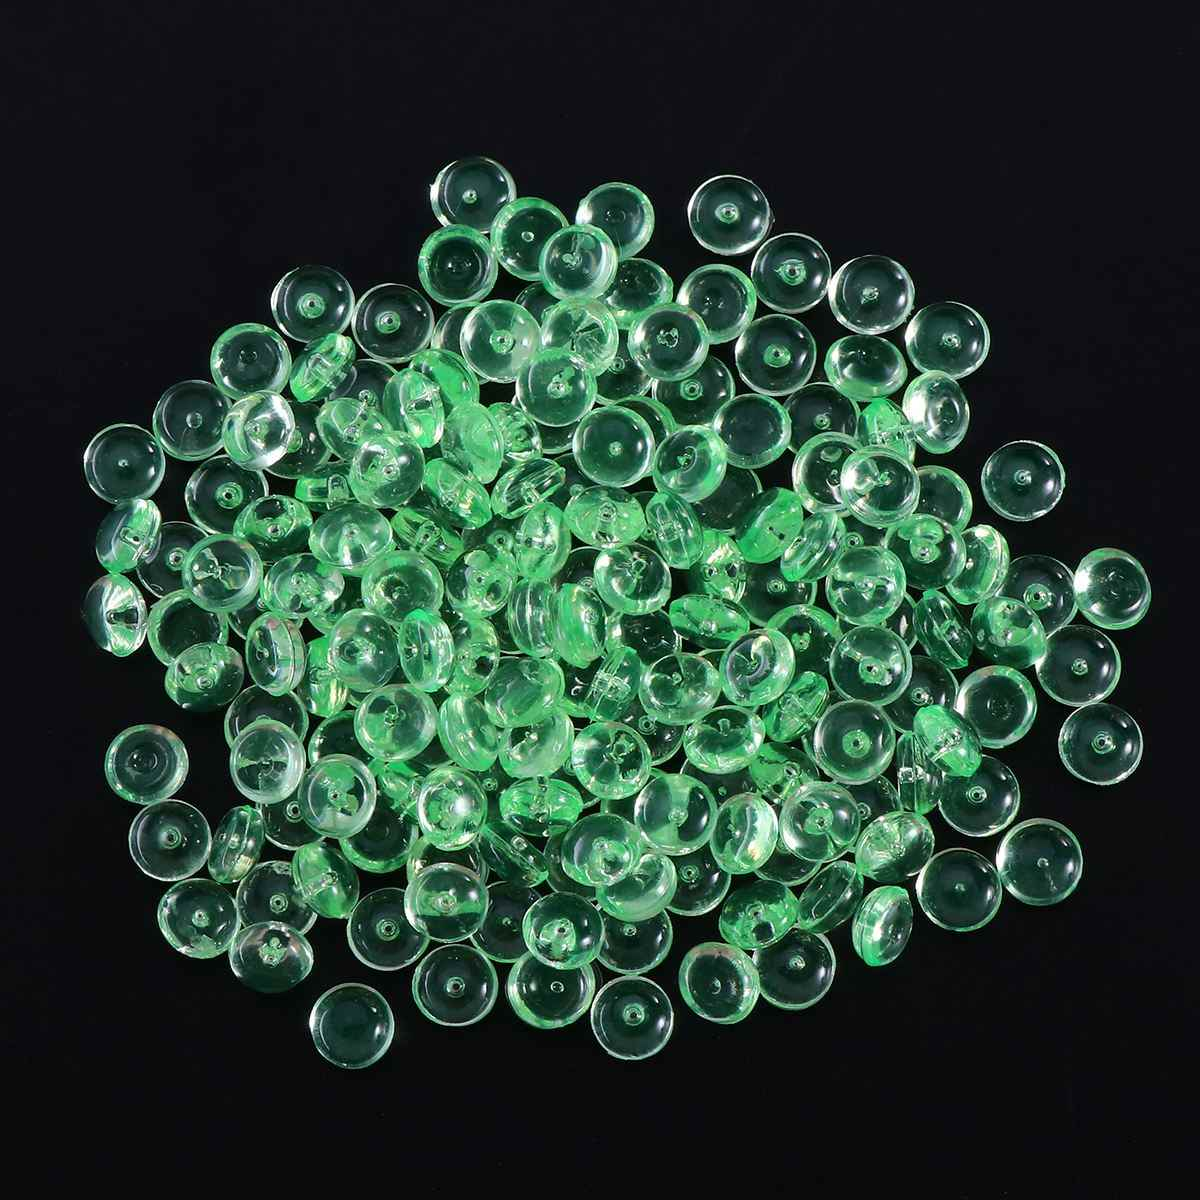 3 Packs of Fishbowl Beads Plastic Vase Filler Beads Fish Bowl Beads for Slime Making DIY Art Craft Wedding Party Decoration